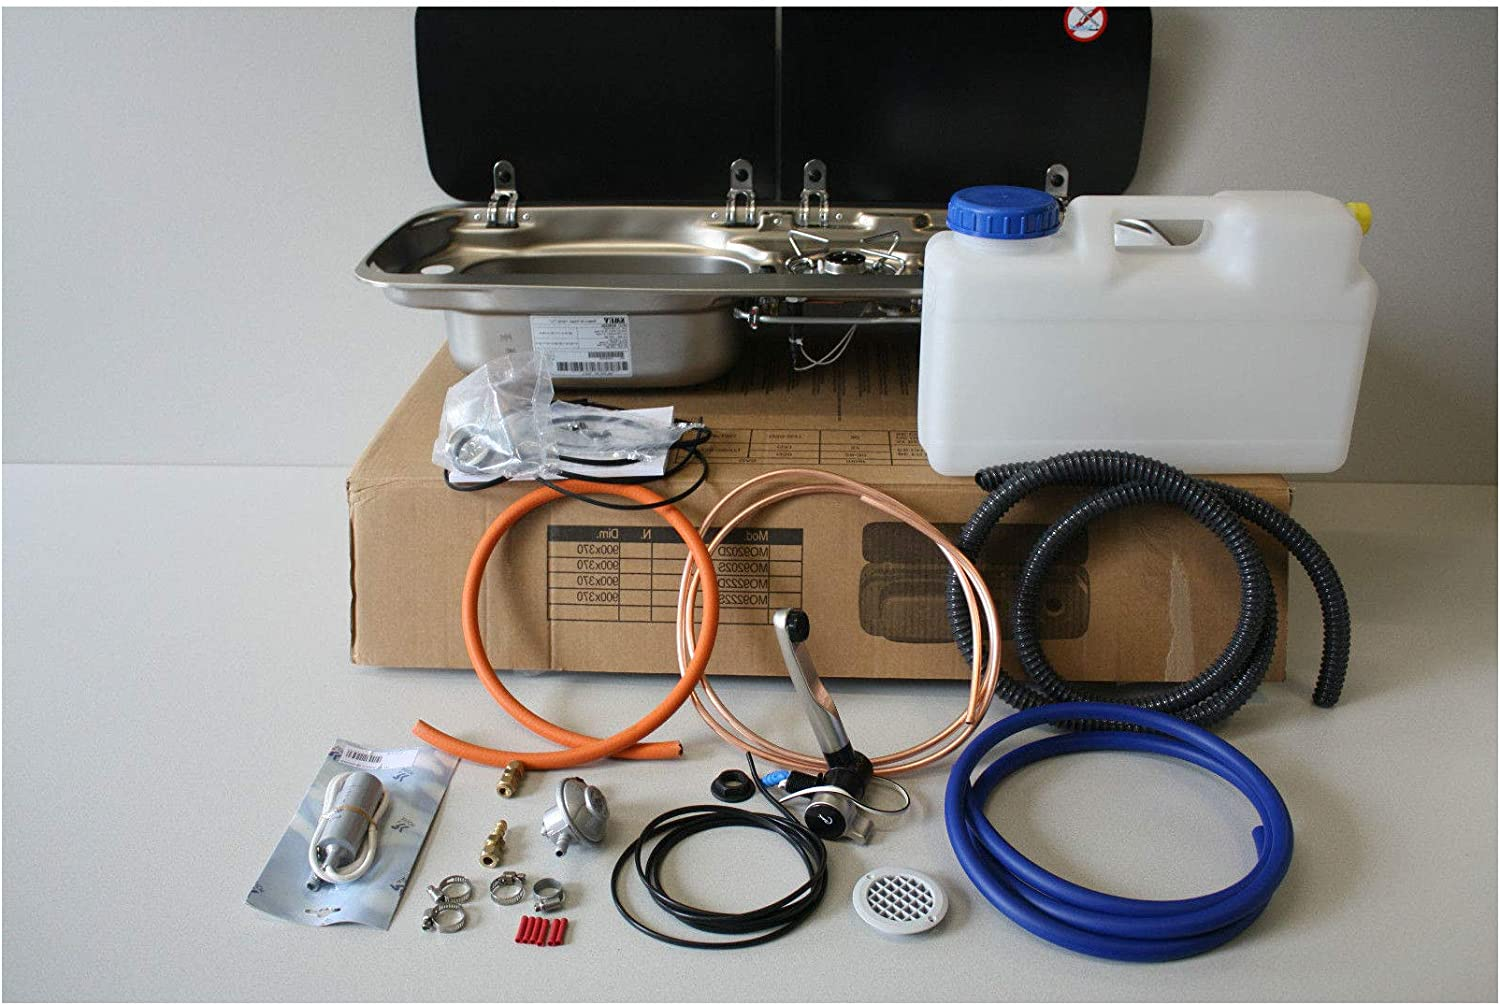 Installation Kit Truma Regulator Pump Micro-Switch Tap Smev 9222 Left-Hand Sink with Hob 12L Water Container